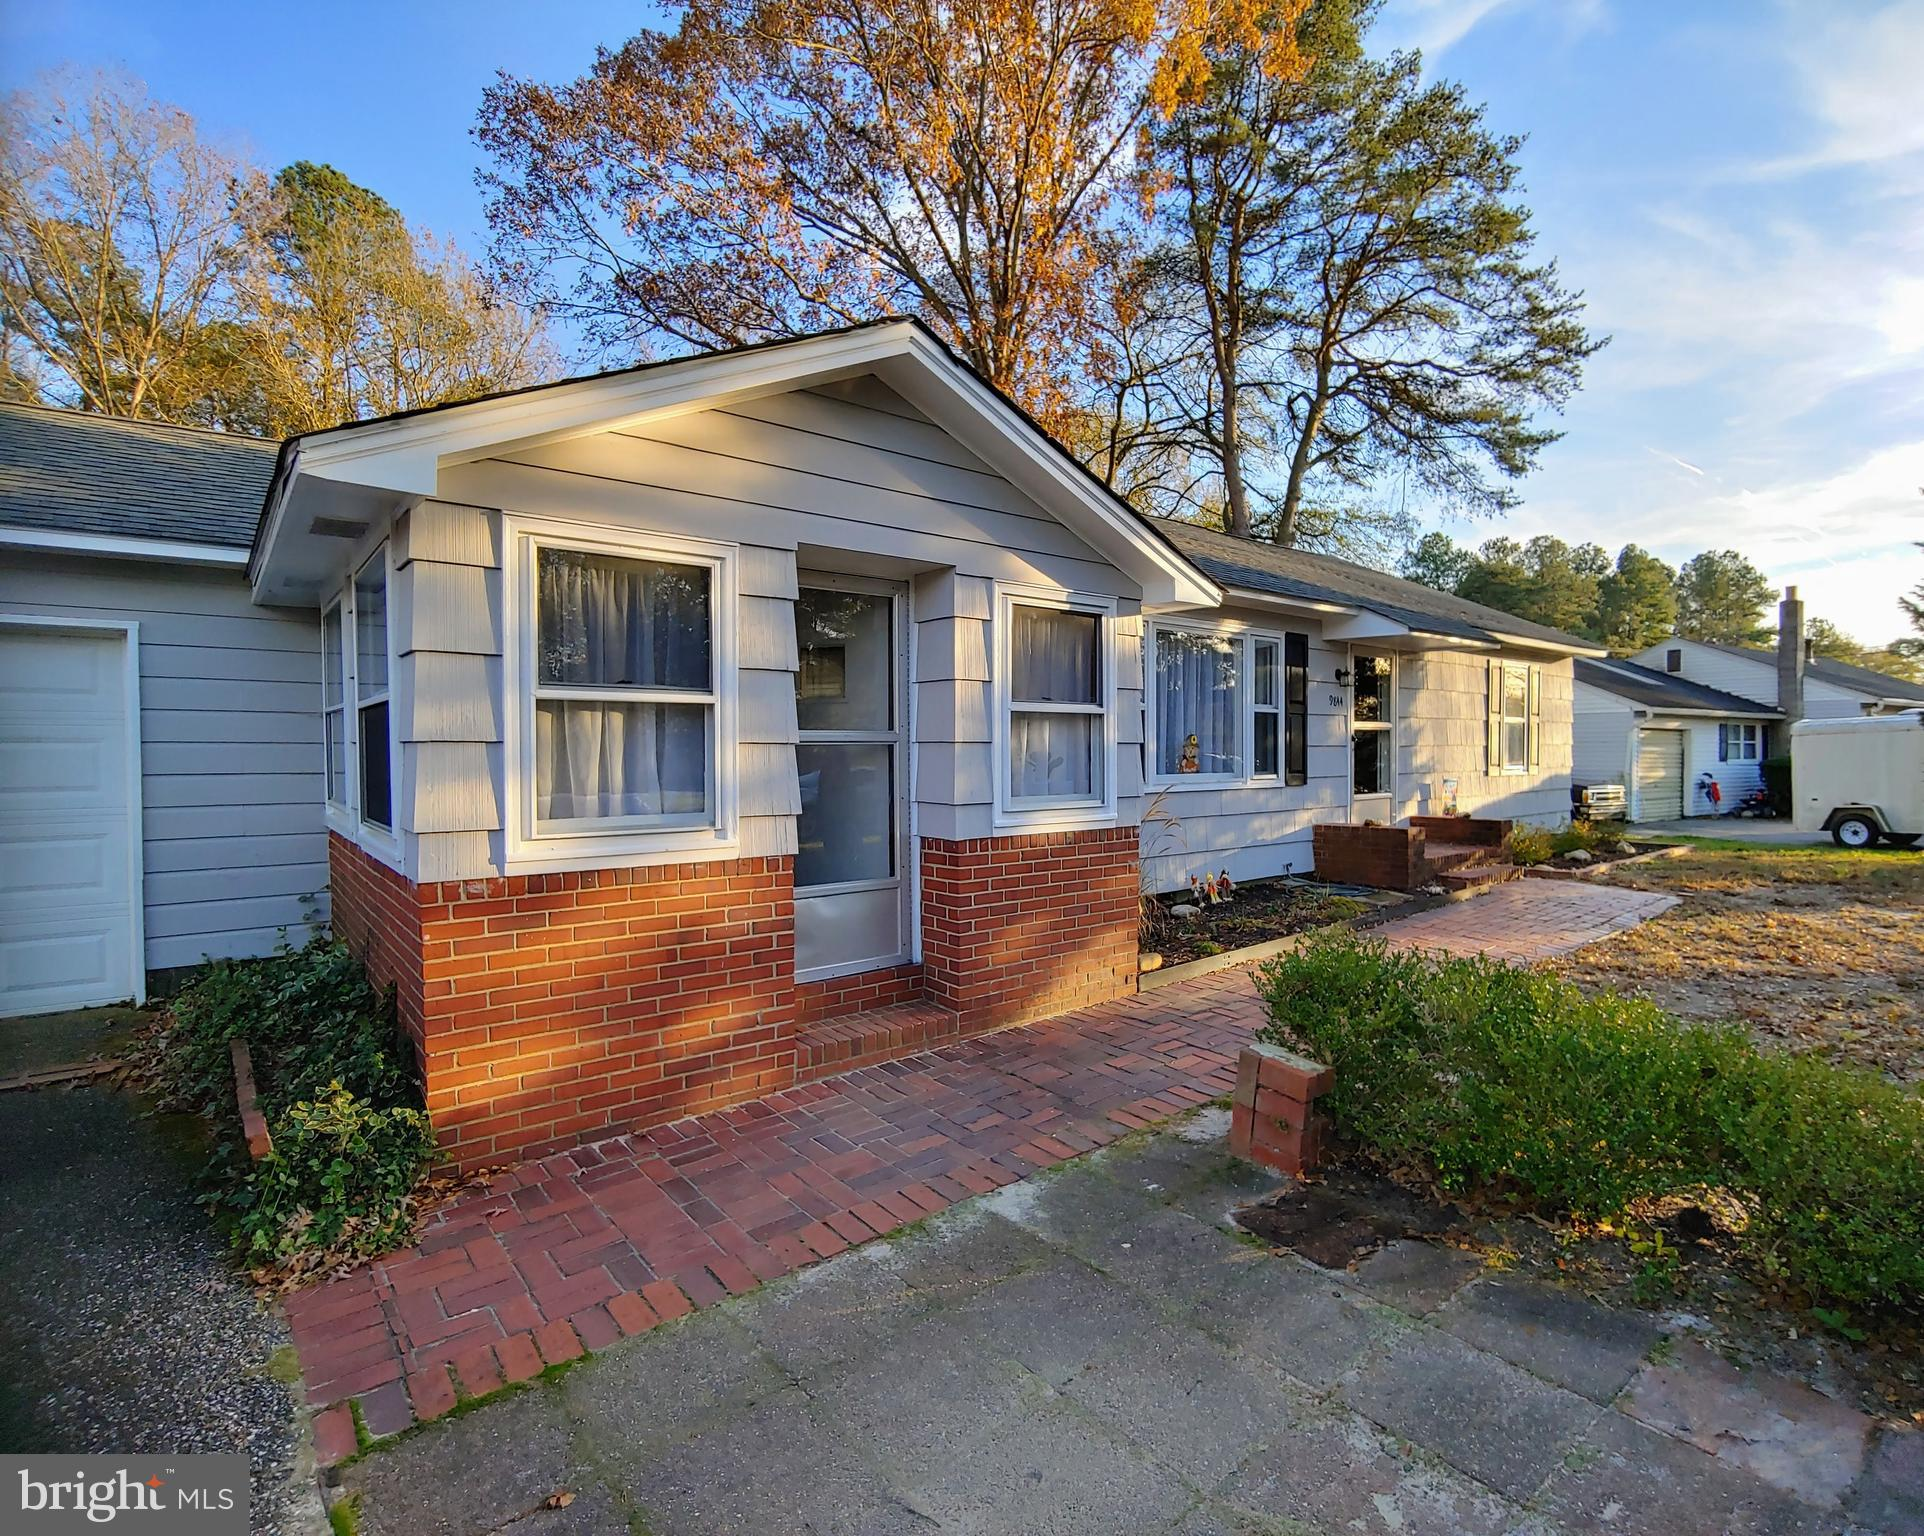 Renovated 3-bedroom, 1.5 bath home on large lot in quiet neighborhood outside of Seaford town limits